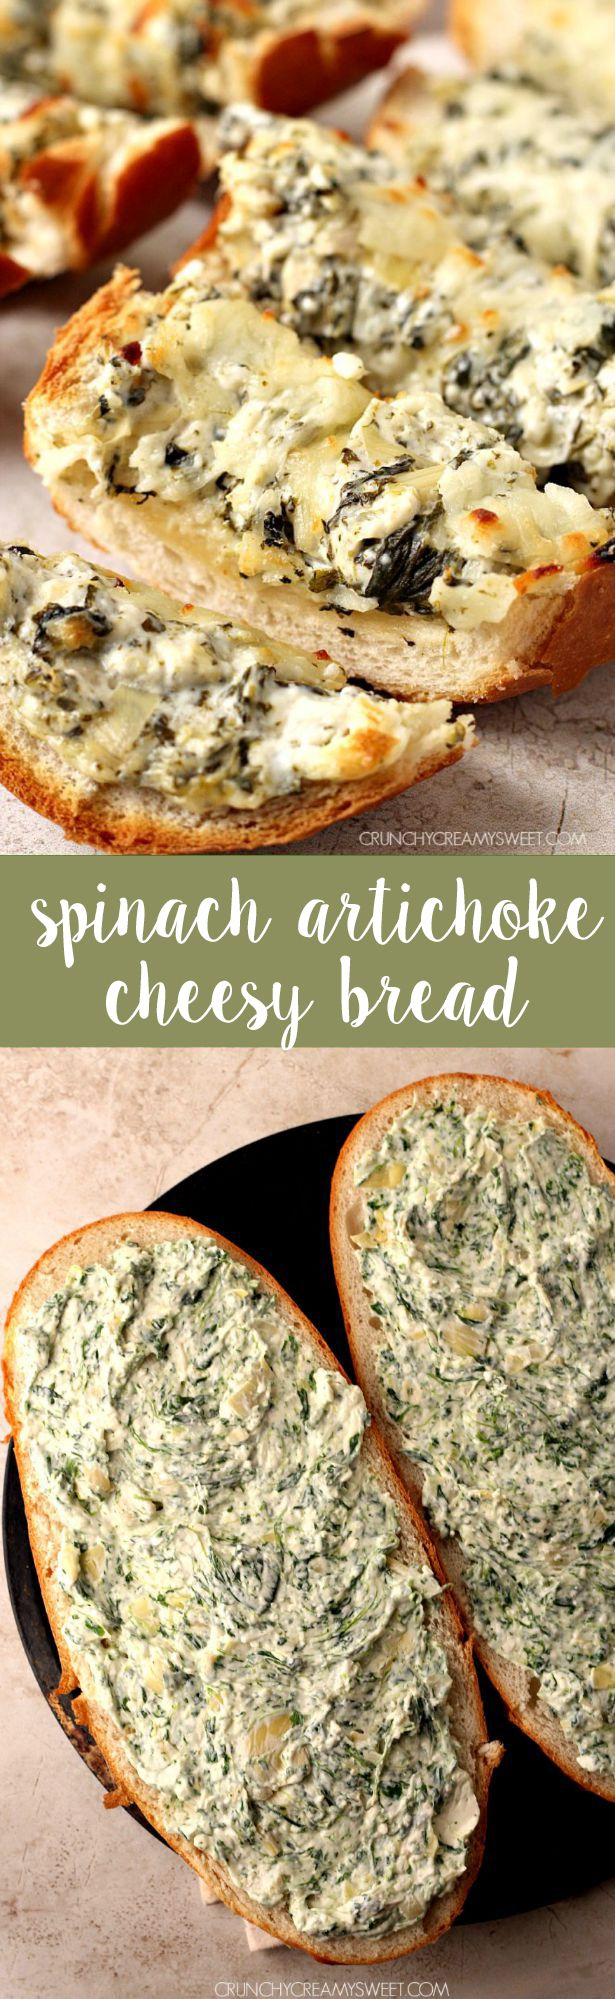 Spinach artichoke appetizer dip cheesy bread. Try making with Jimmy John's Day Old Bread!